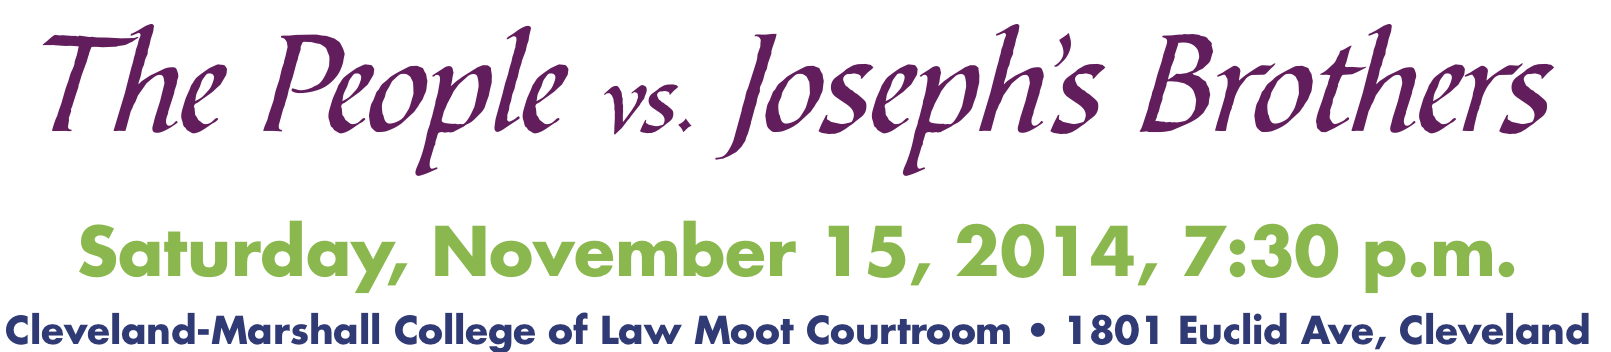 THE PEOPLE vs. JOSEPH'S BROTHERS - A TRIAL. Saturday, November 15, 2014, 7:30pm, Cleveland-Marshall College of Law Moot Courtroom . 1801 Euclid Avenue, Cleveland Ohio